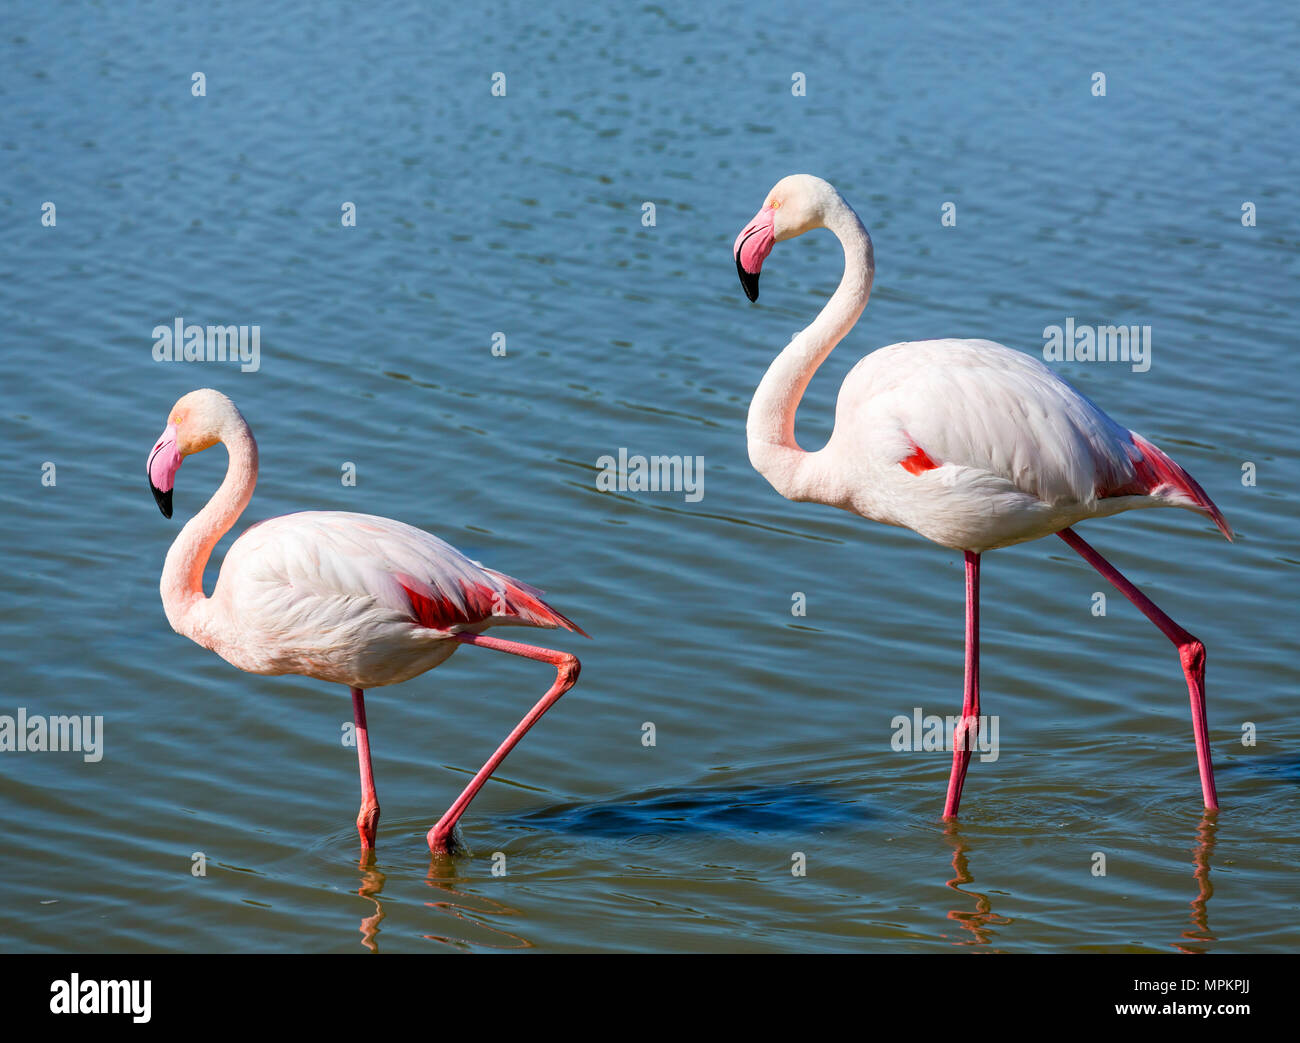 Greater Flamingo (Phoenicopterus roseus). Pair of Greater Flamingos in the Parc ornithologique du Pont de Gau, Camargue, Provence, France. - Stock Image